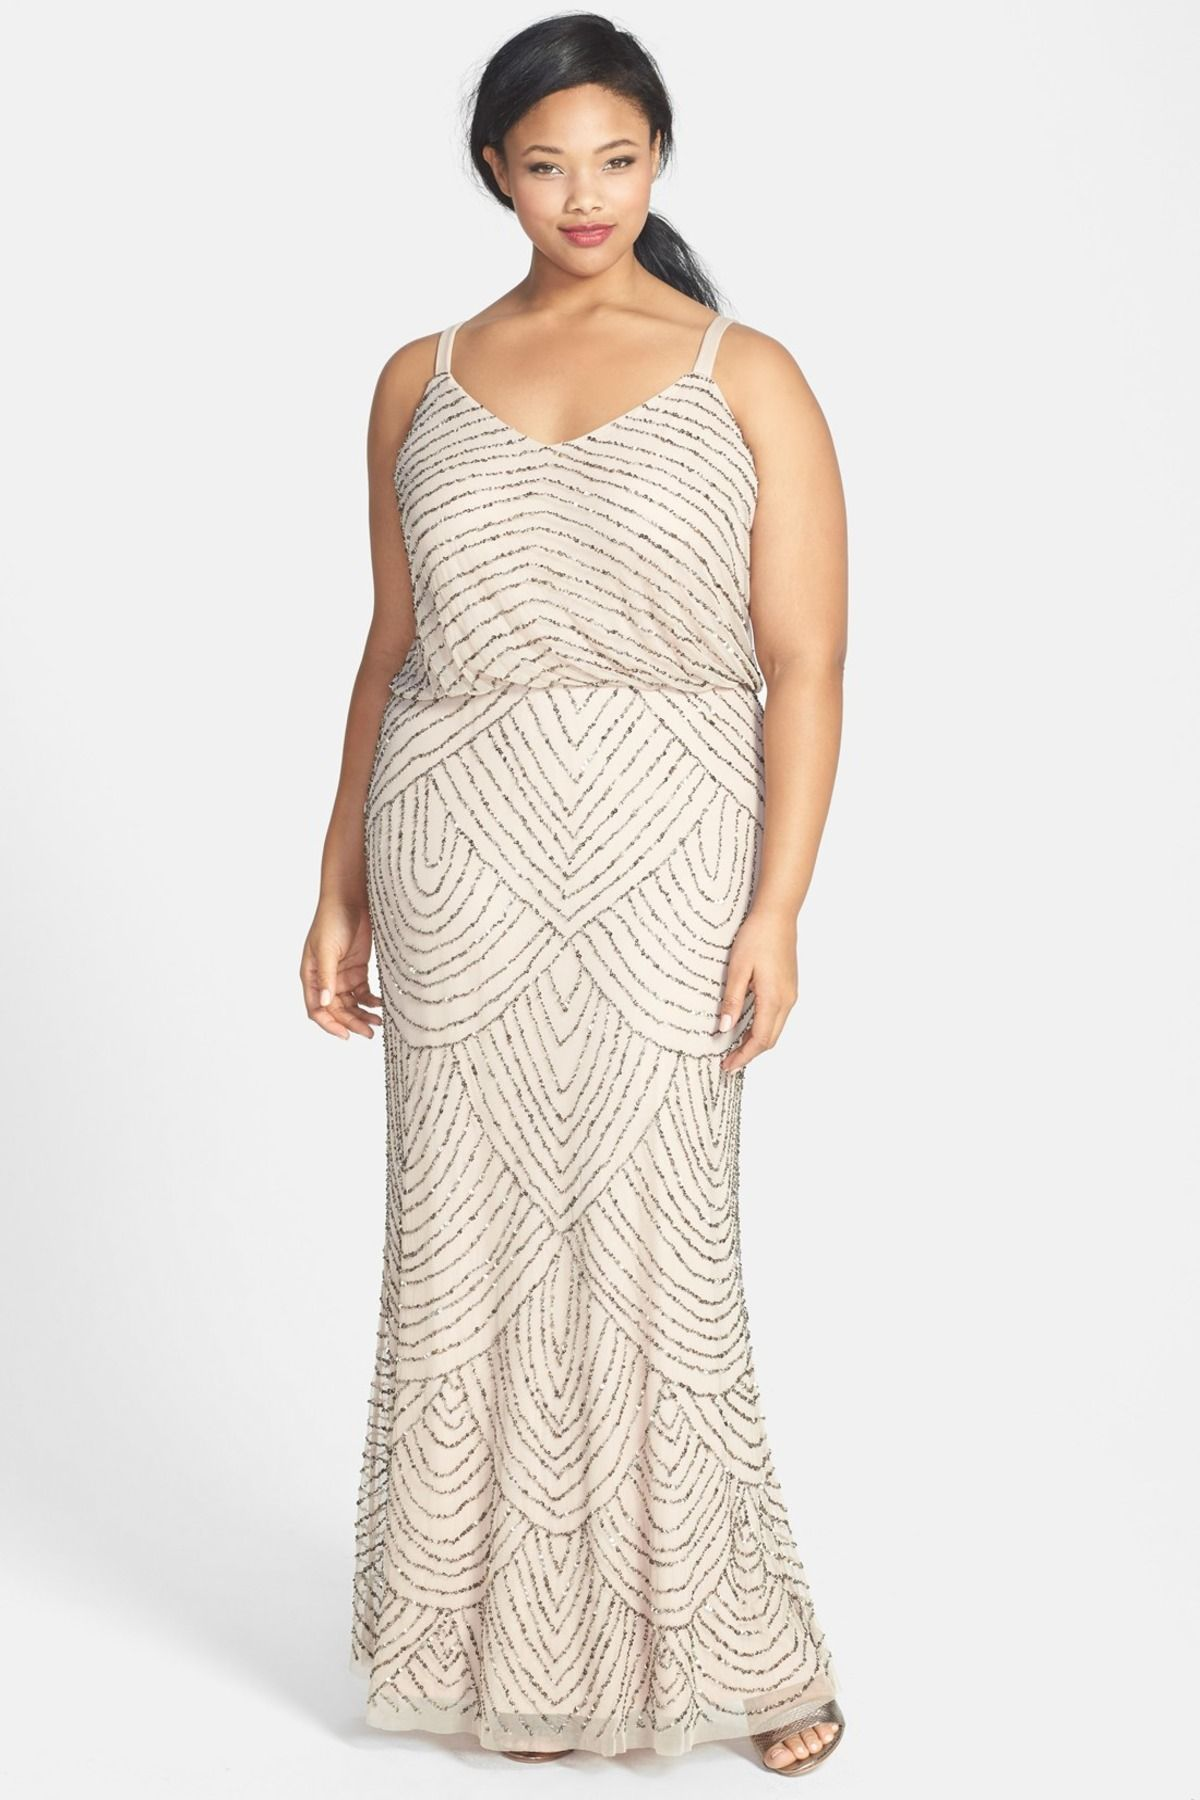 Adrianna Papell | Beaded Blouson Gown (Plus Size | Adrianna papell ...